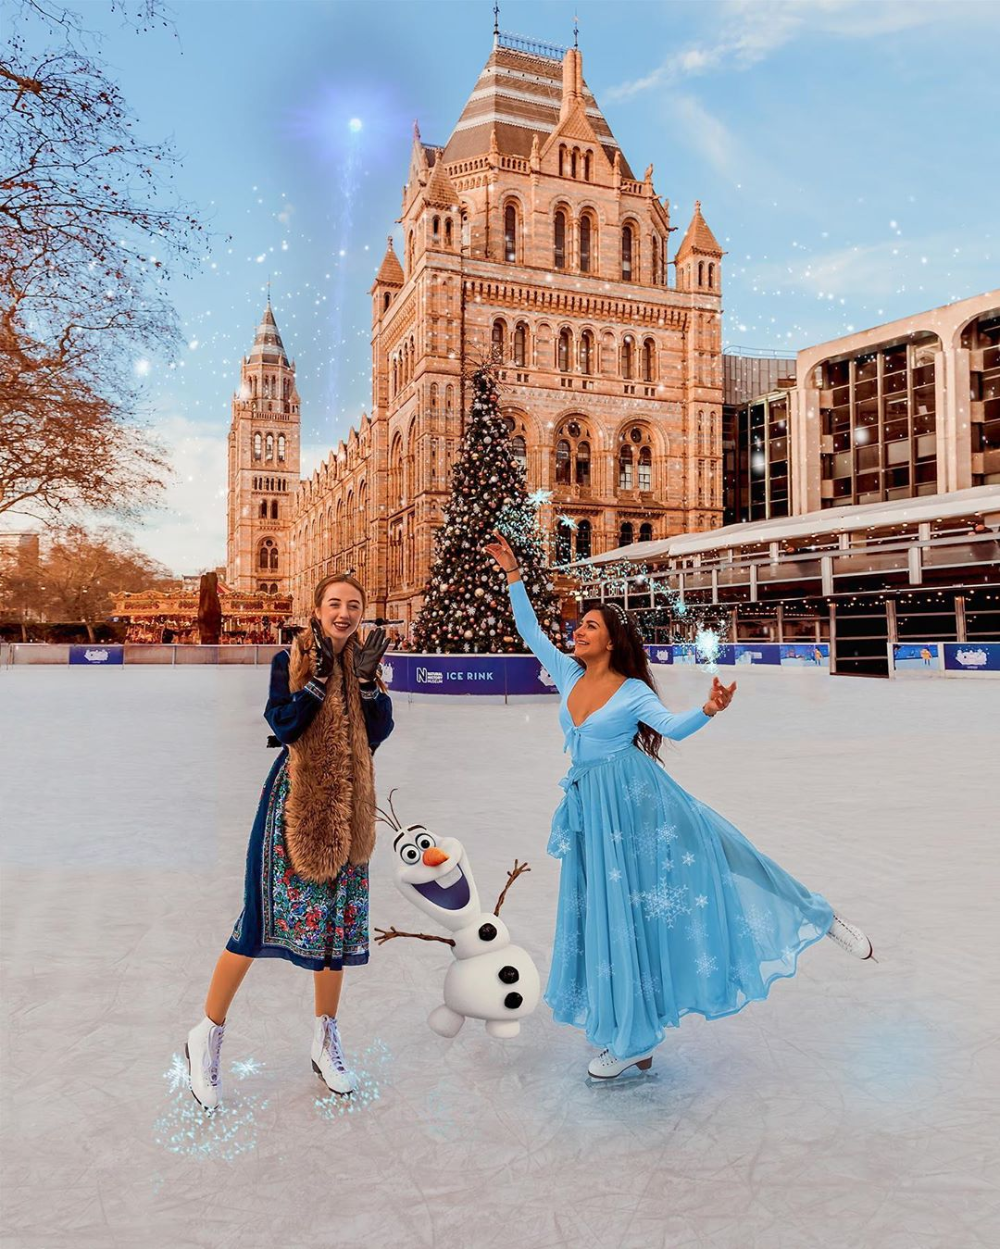 Magical Christmas On Ice 2020 Anna & Elsa Skating Cosplay at Natural History Museum Ice Rink in